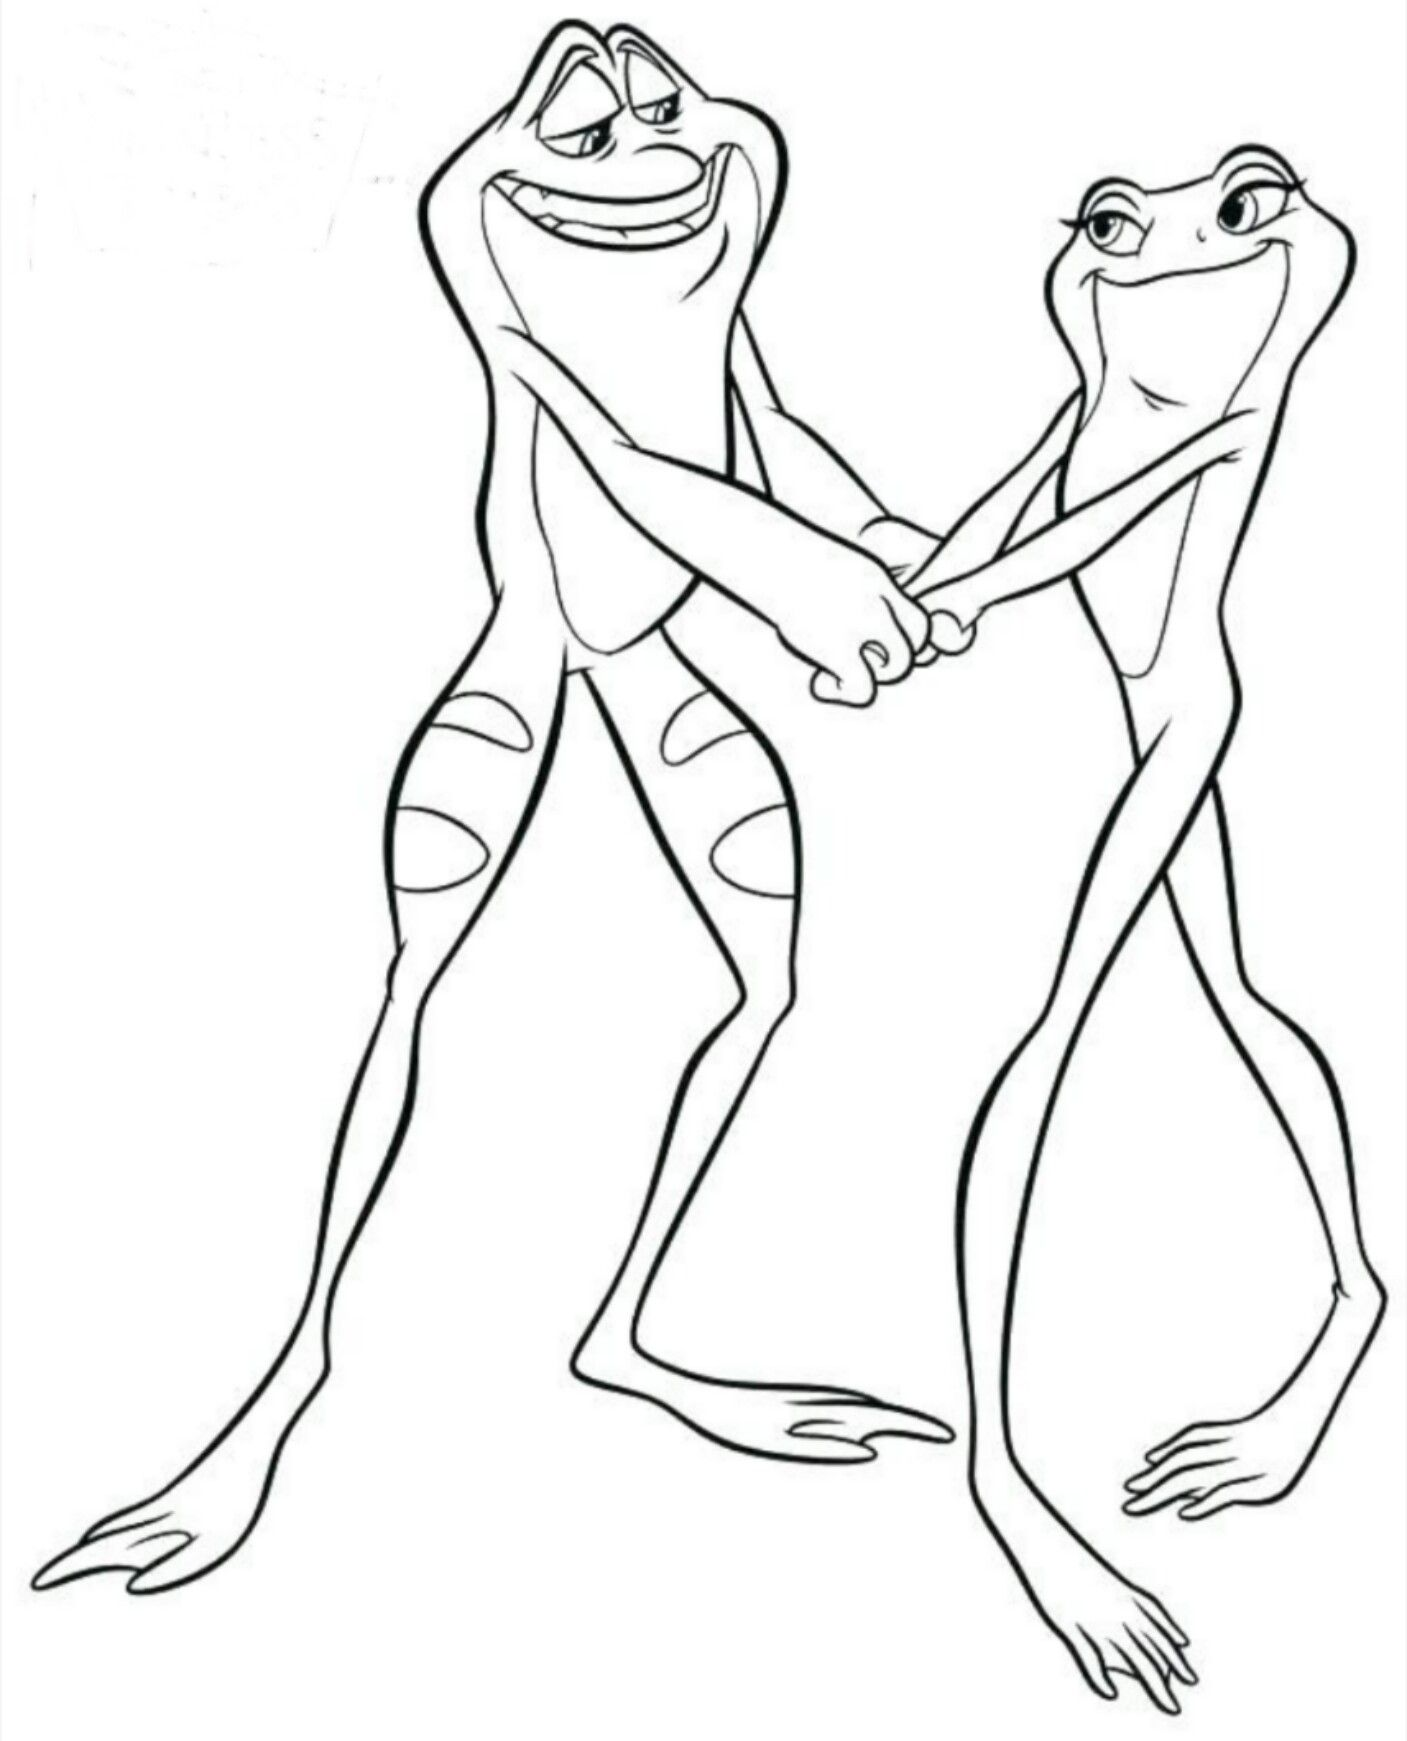 Pin by Kayla MendezK on coloring | Frog coloring pages ...